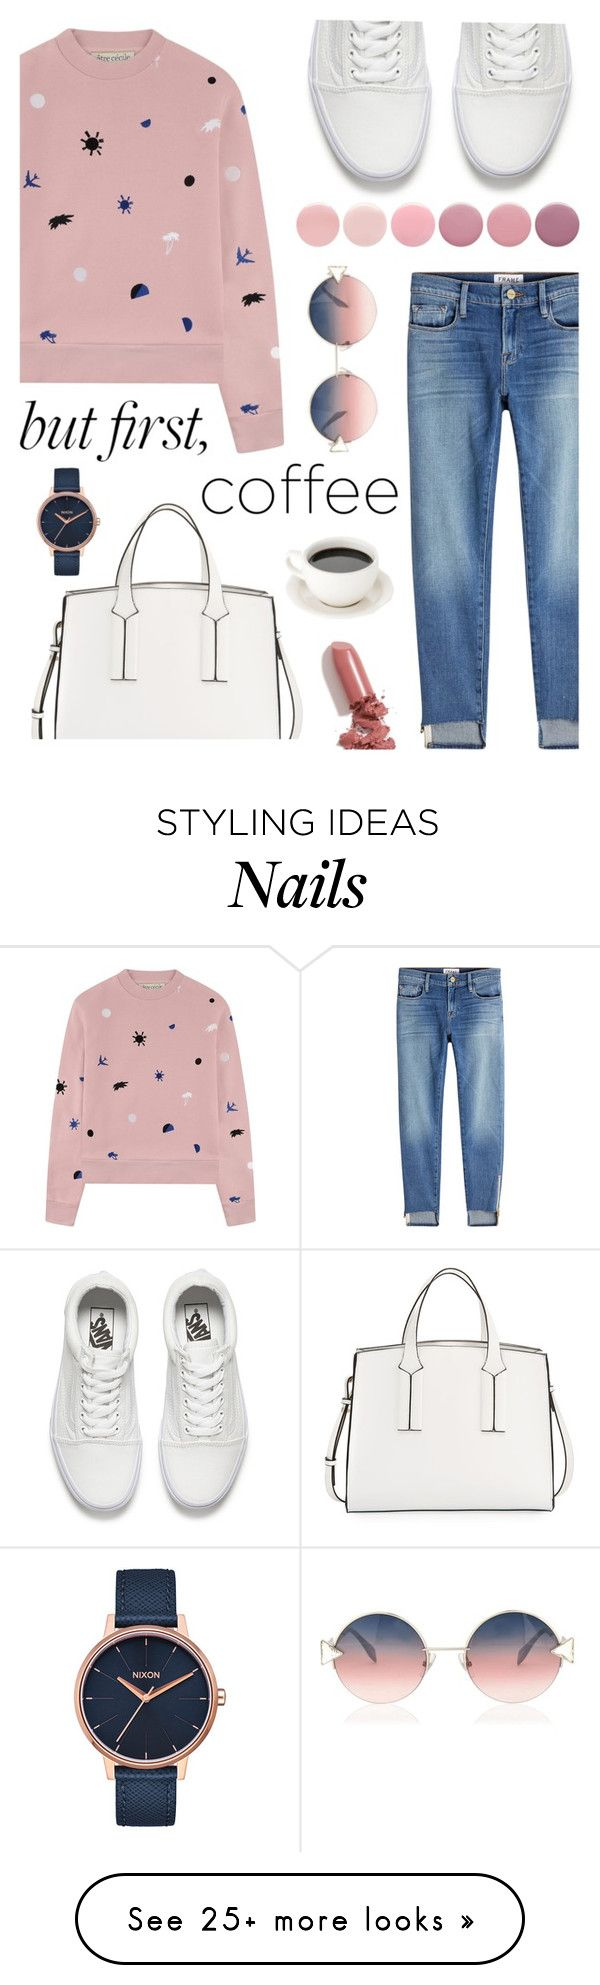 """""""Afternoon Coffee"""" by tqangel on Polyvore featuring Être Cécile, Frame, French Connection, Vans, Nixon, LAQA & Co., Fendi and Deborah Lippmann"""